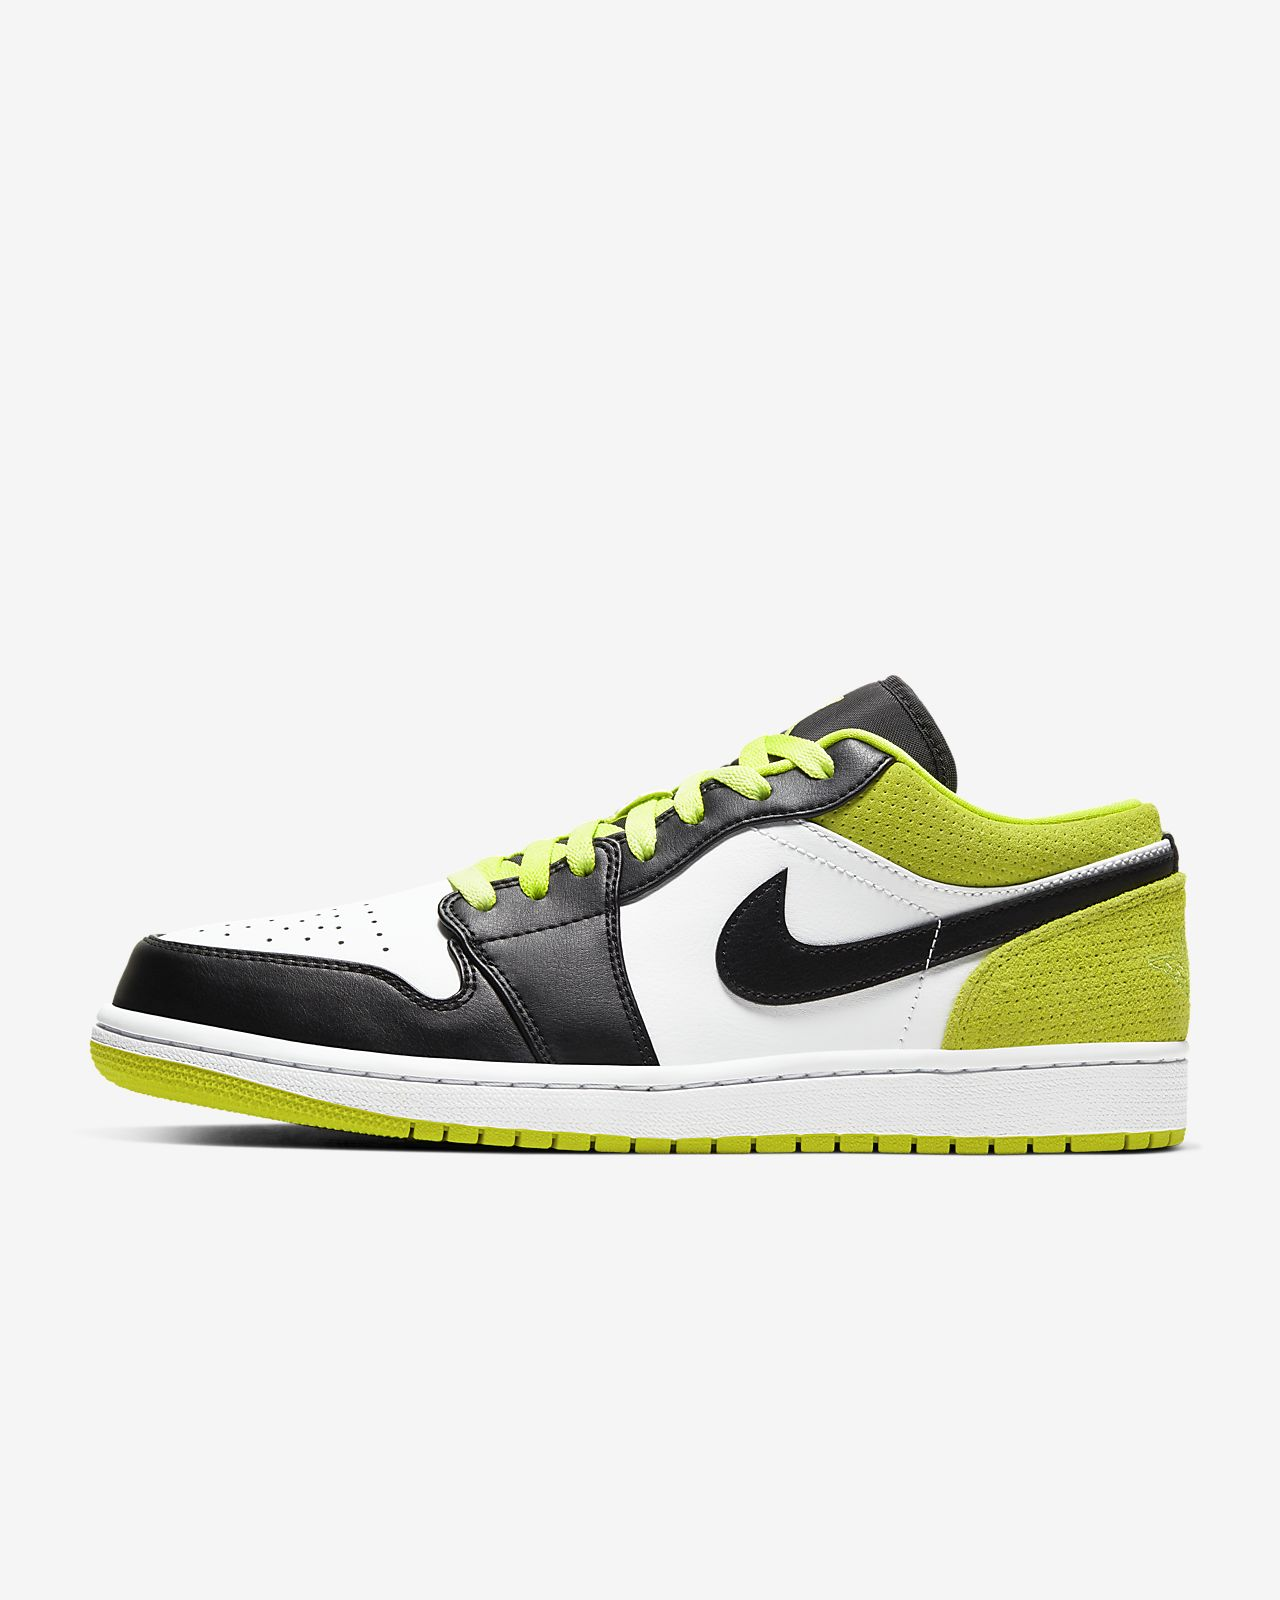 air jordan 1 low jaune et noir